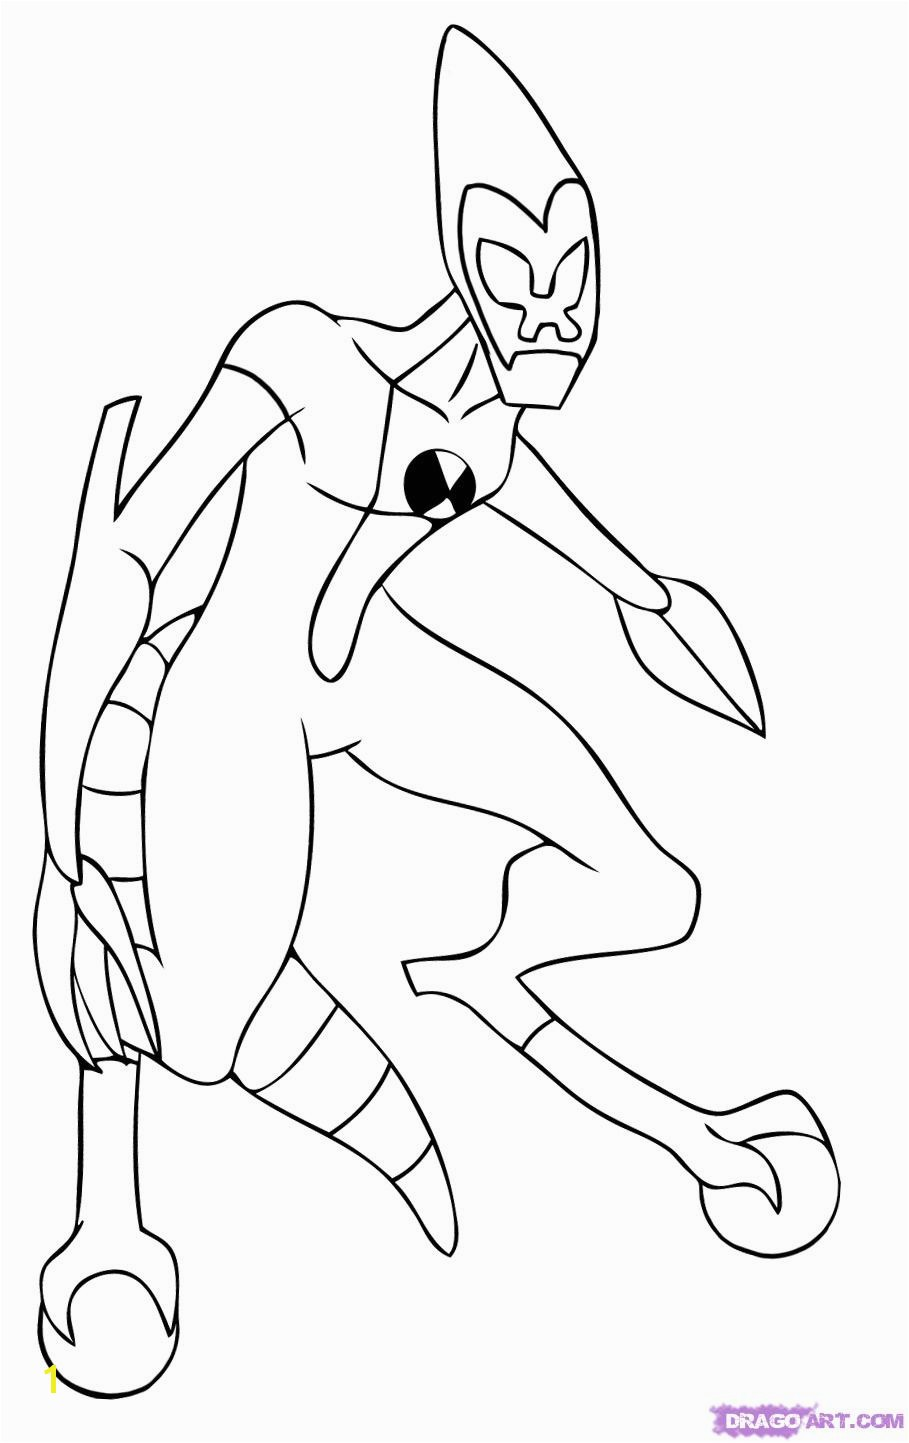 how to draw ben 10 aliens xlr8 step 6